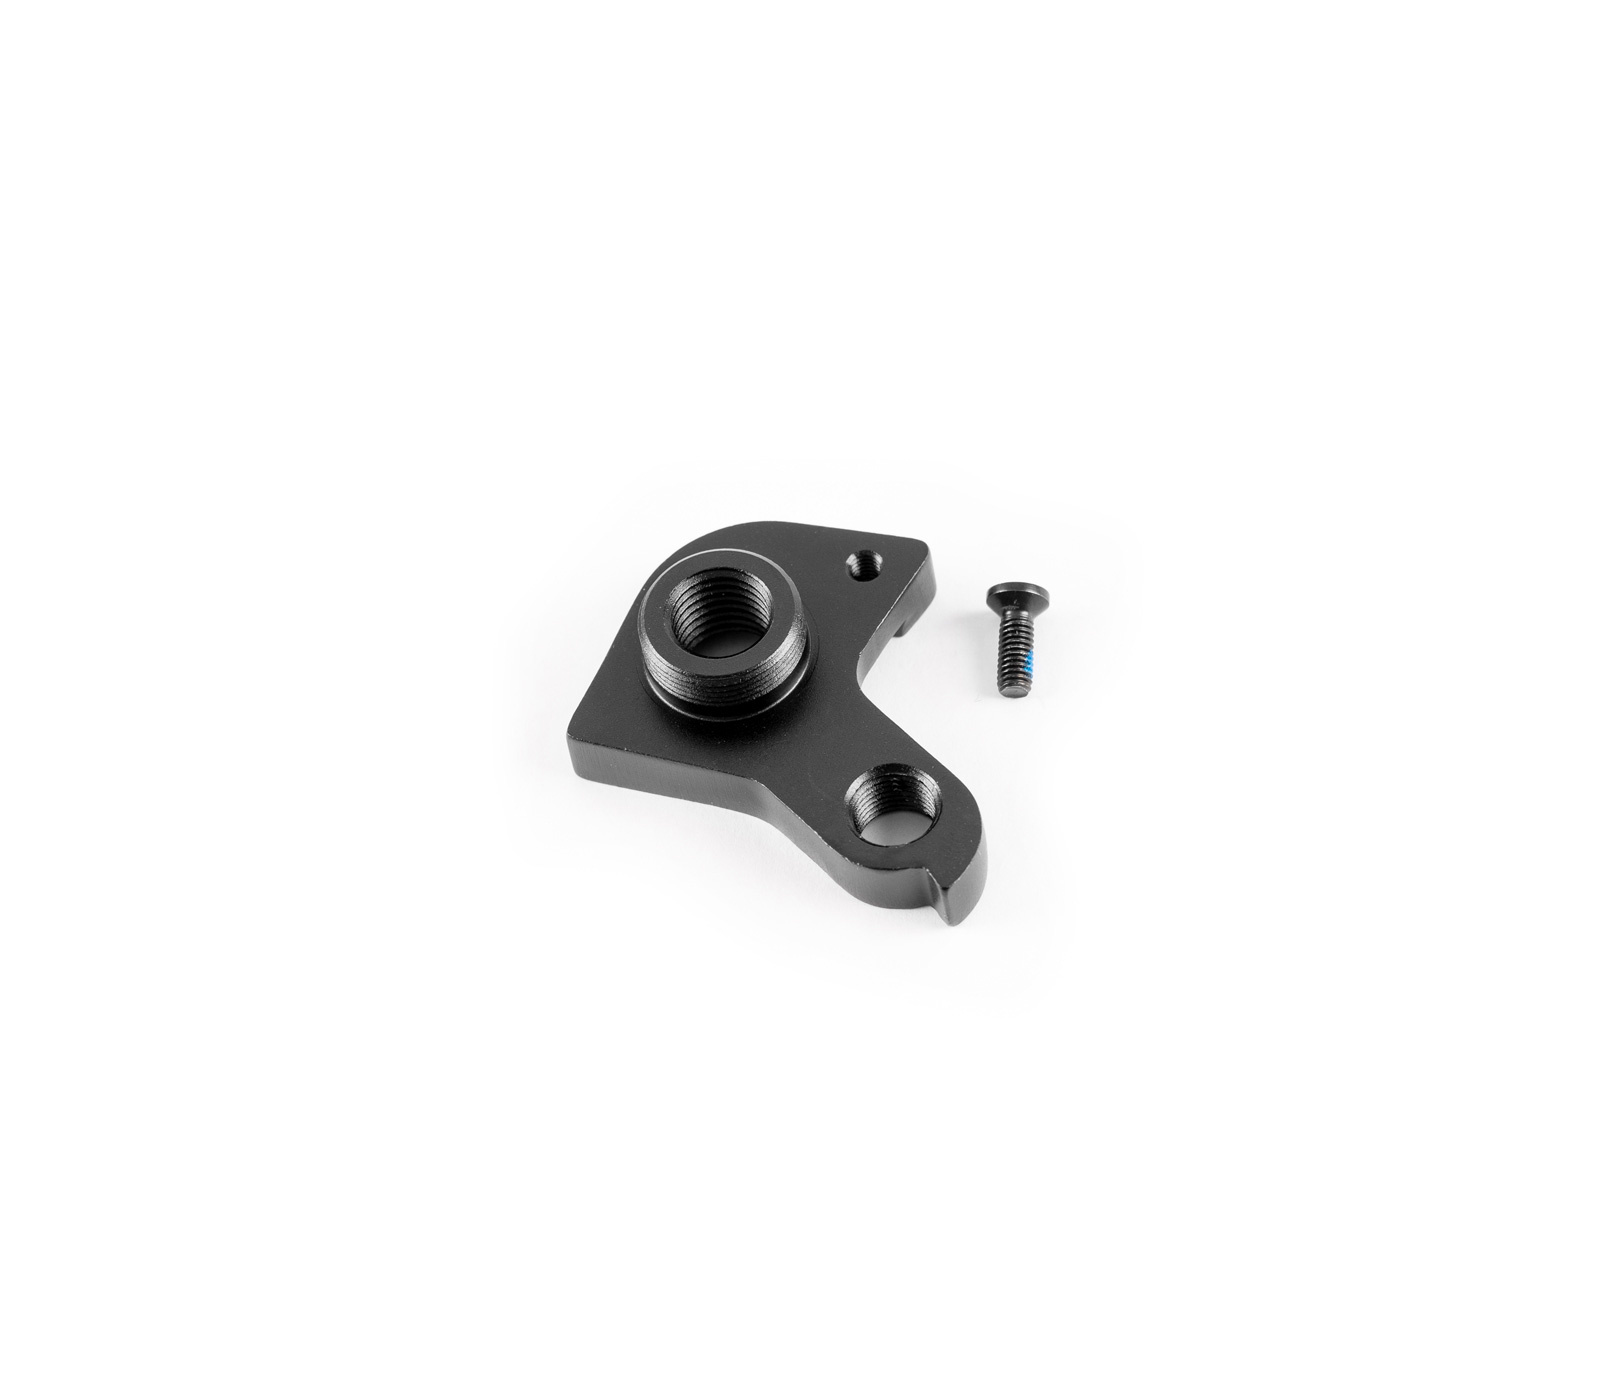 Orbea ROAD STD DERAILLEUR HANGER X12 KIT